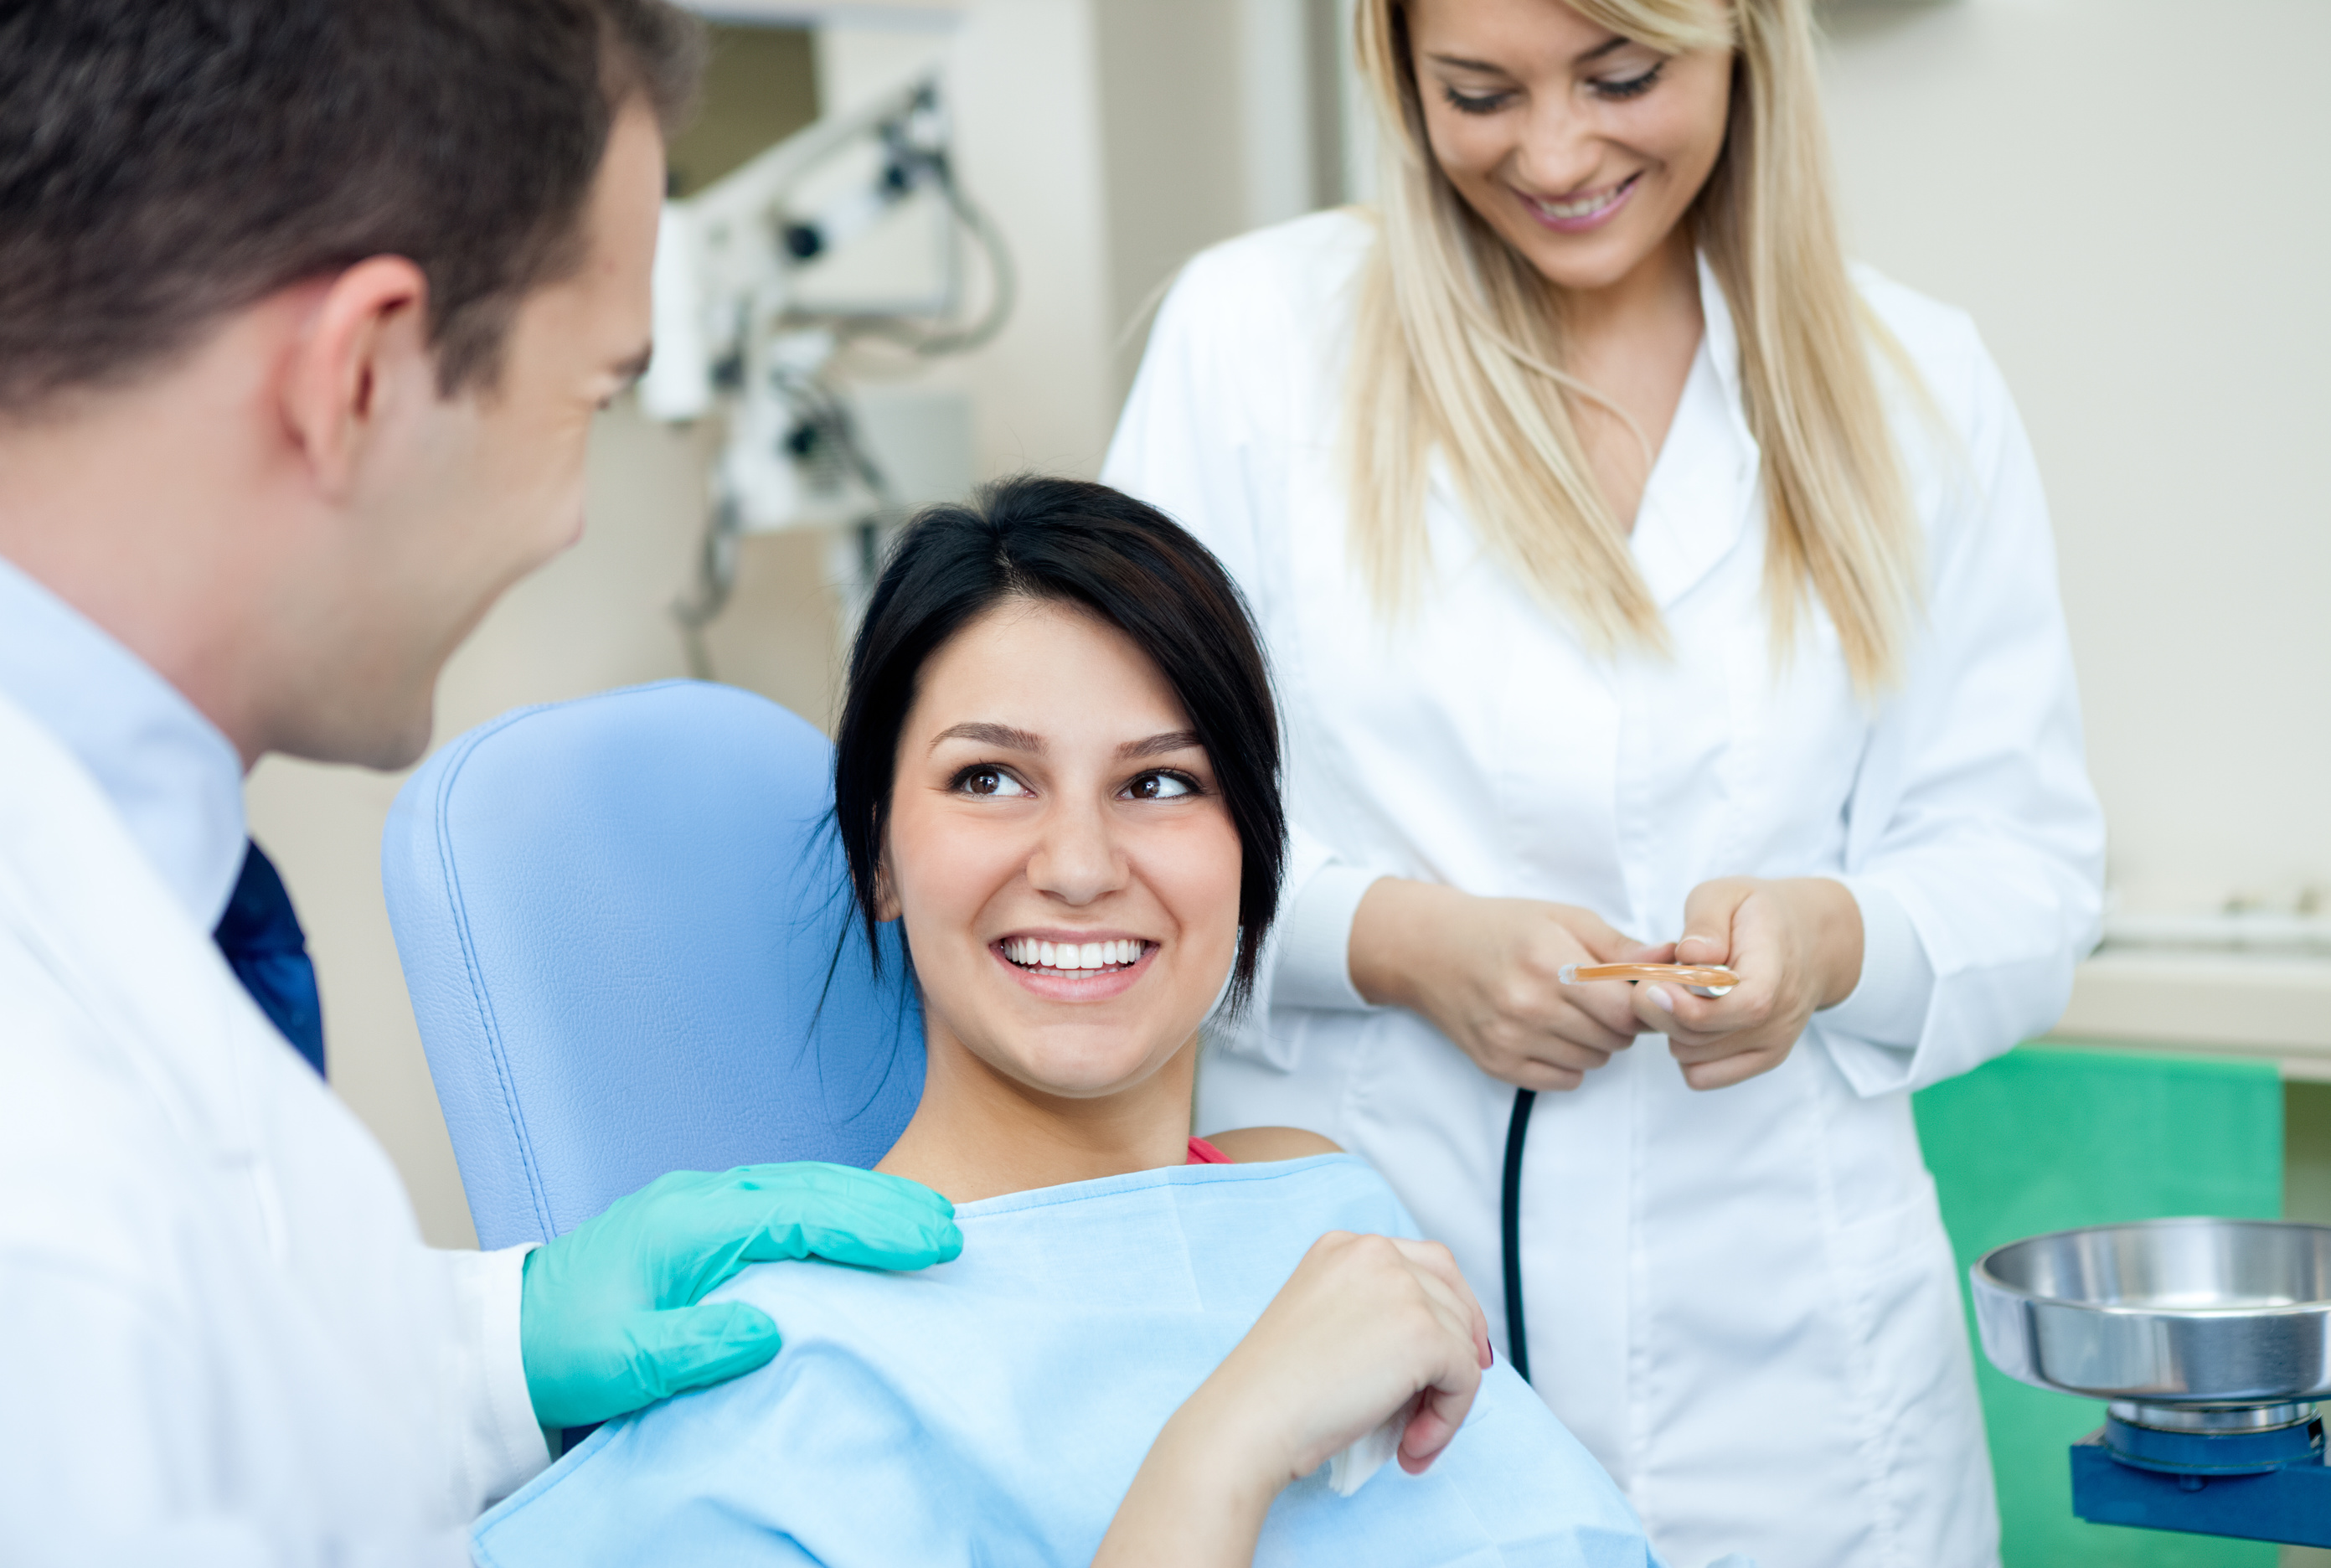 Where can I find Fort Lauderdale root canal treatment?